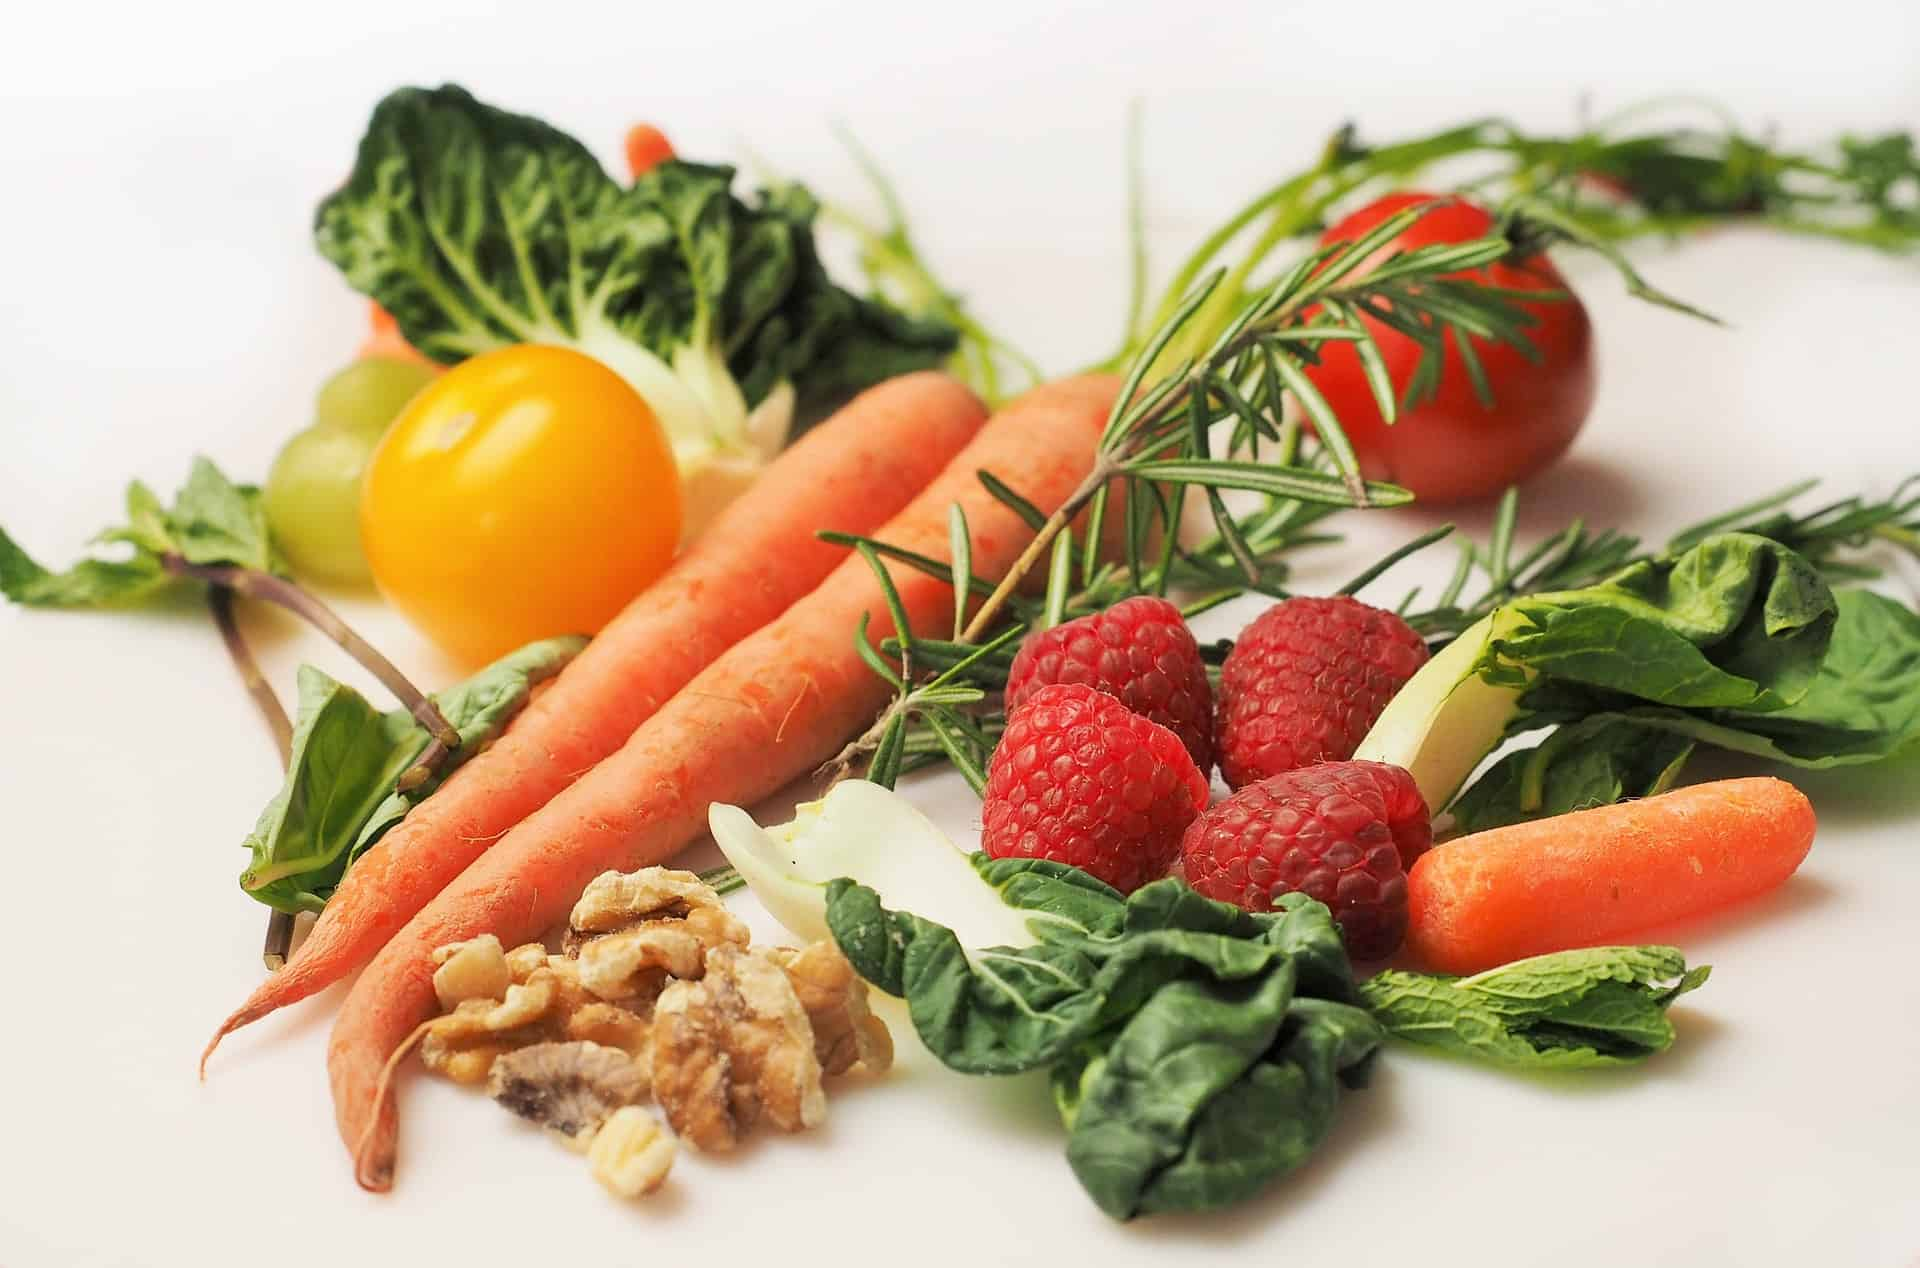 Healthy Eating: The Power of Habit